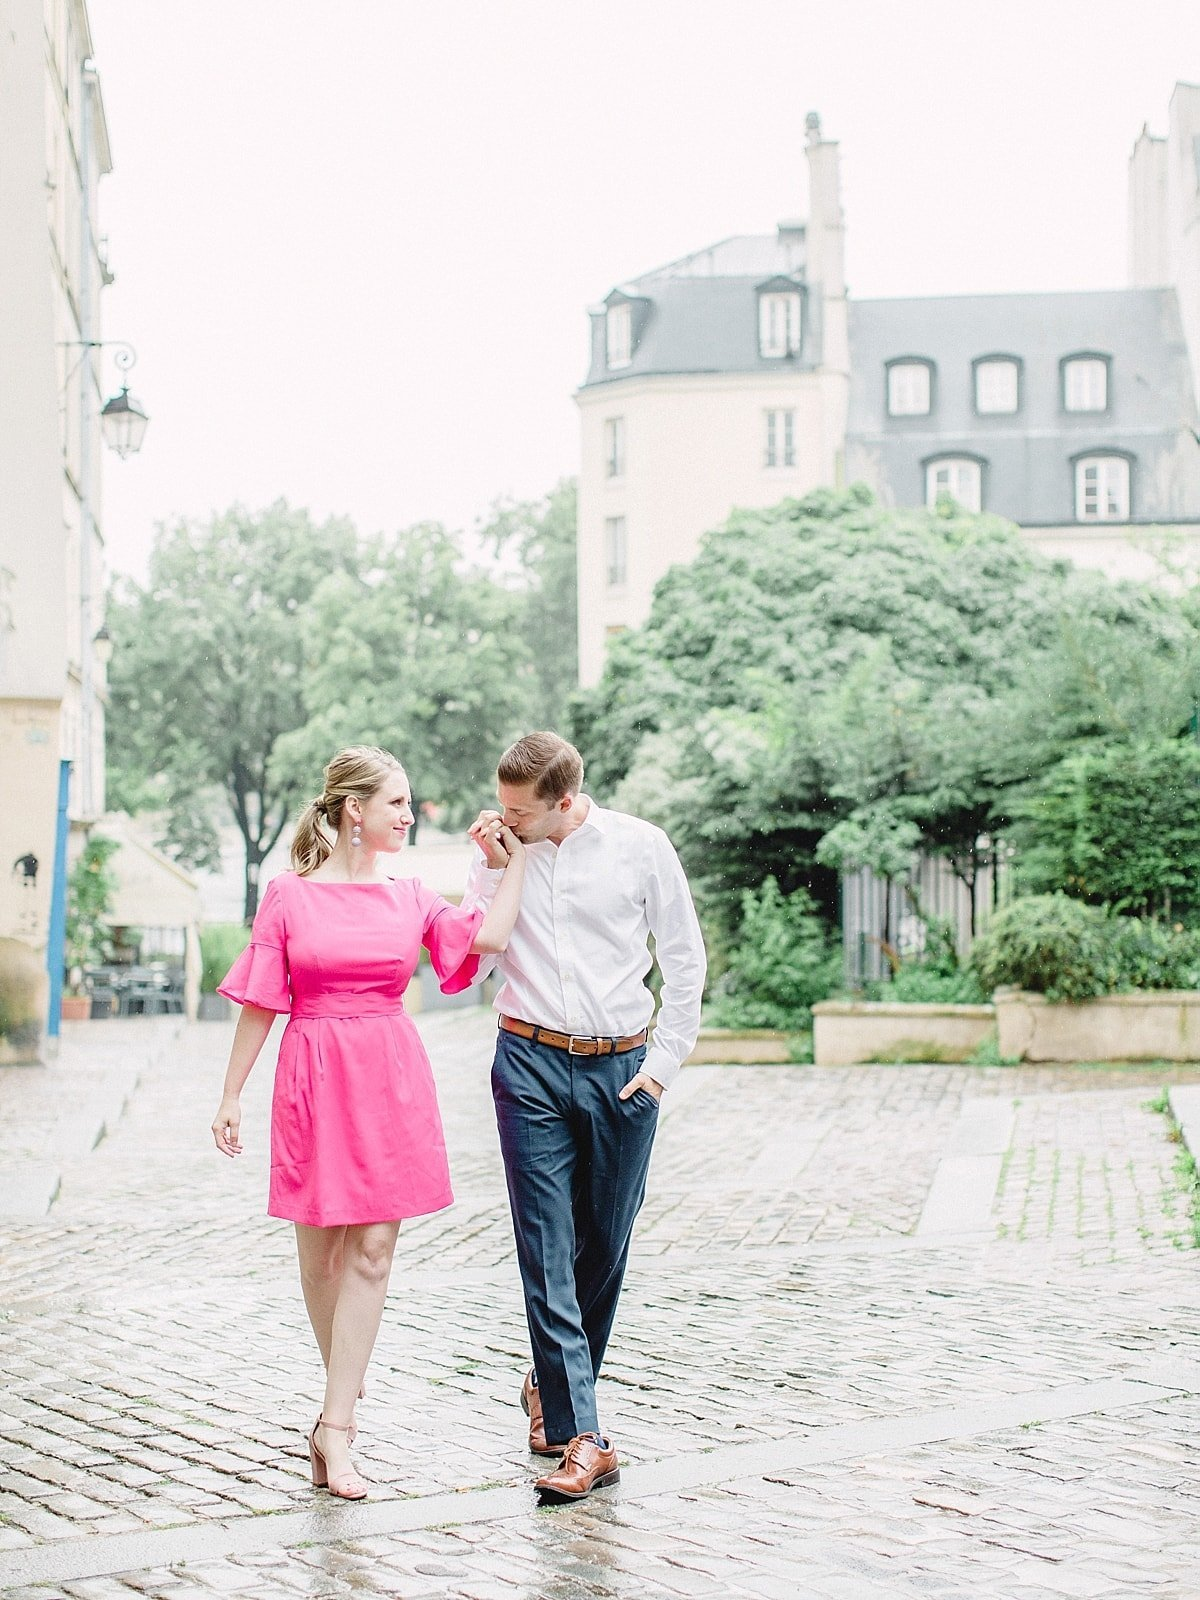 paris-photo-session-anniversary-alicia-yarrish-photography_34